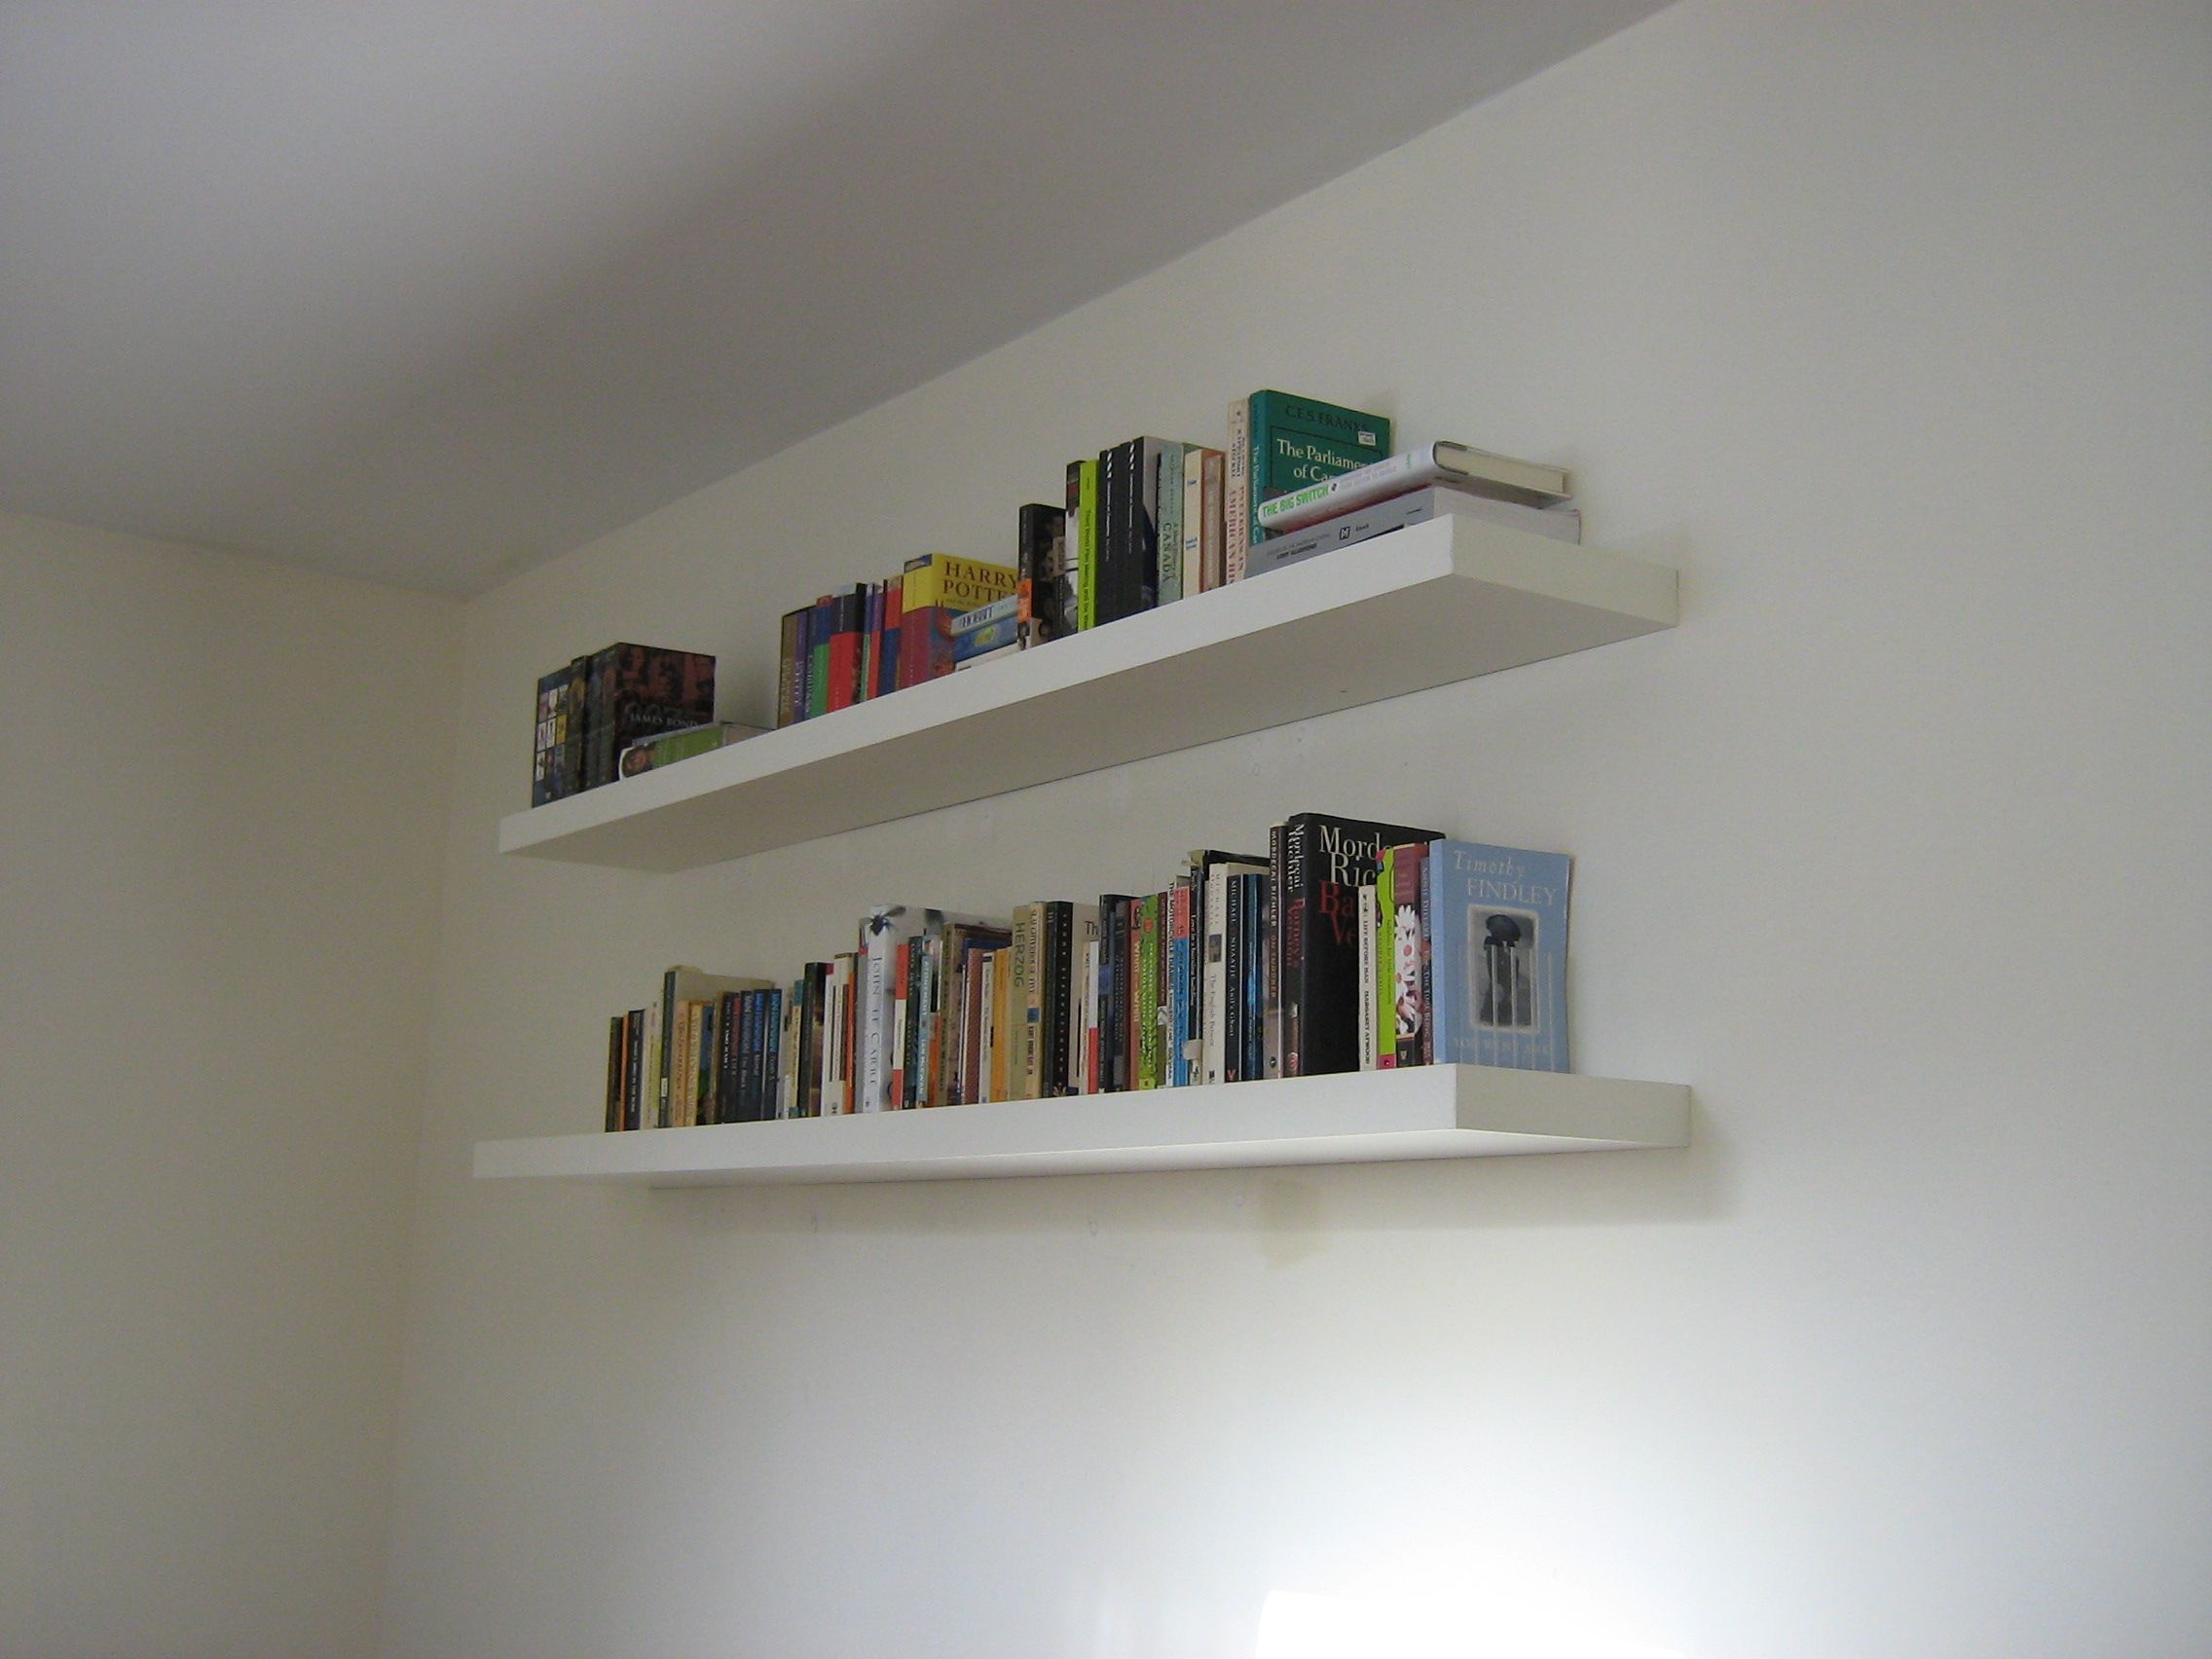 book wall shelves gallery with design enhancement  contemporary  - book wall shelves gallery with design enhancement  contemporary books floatingshelves on white wall